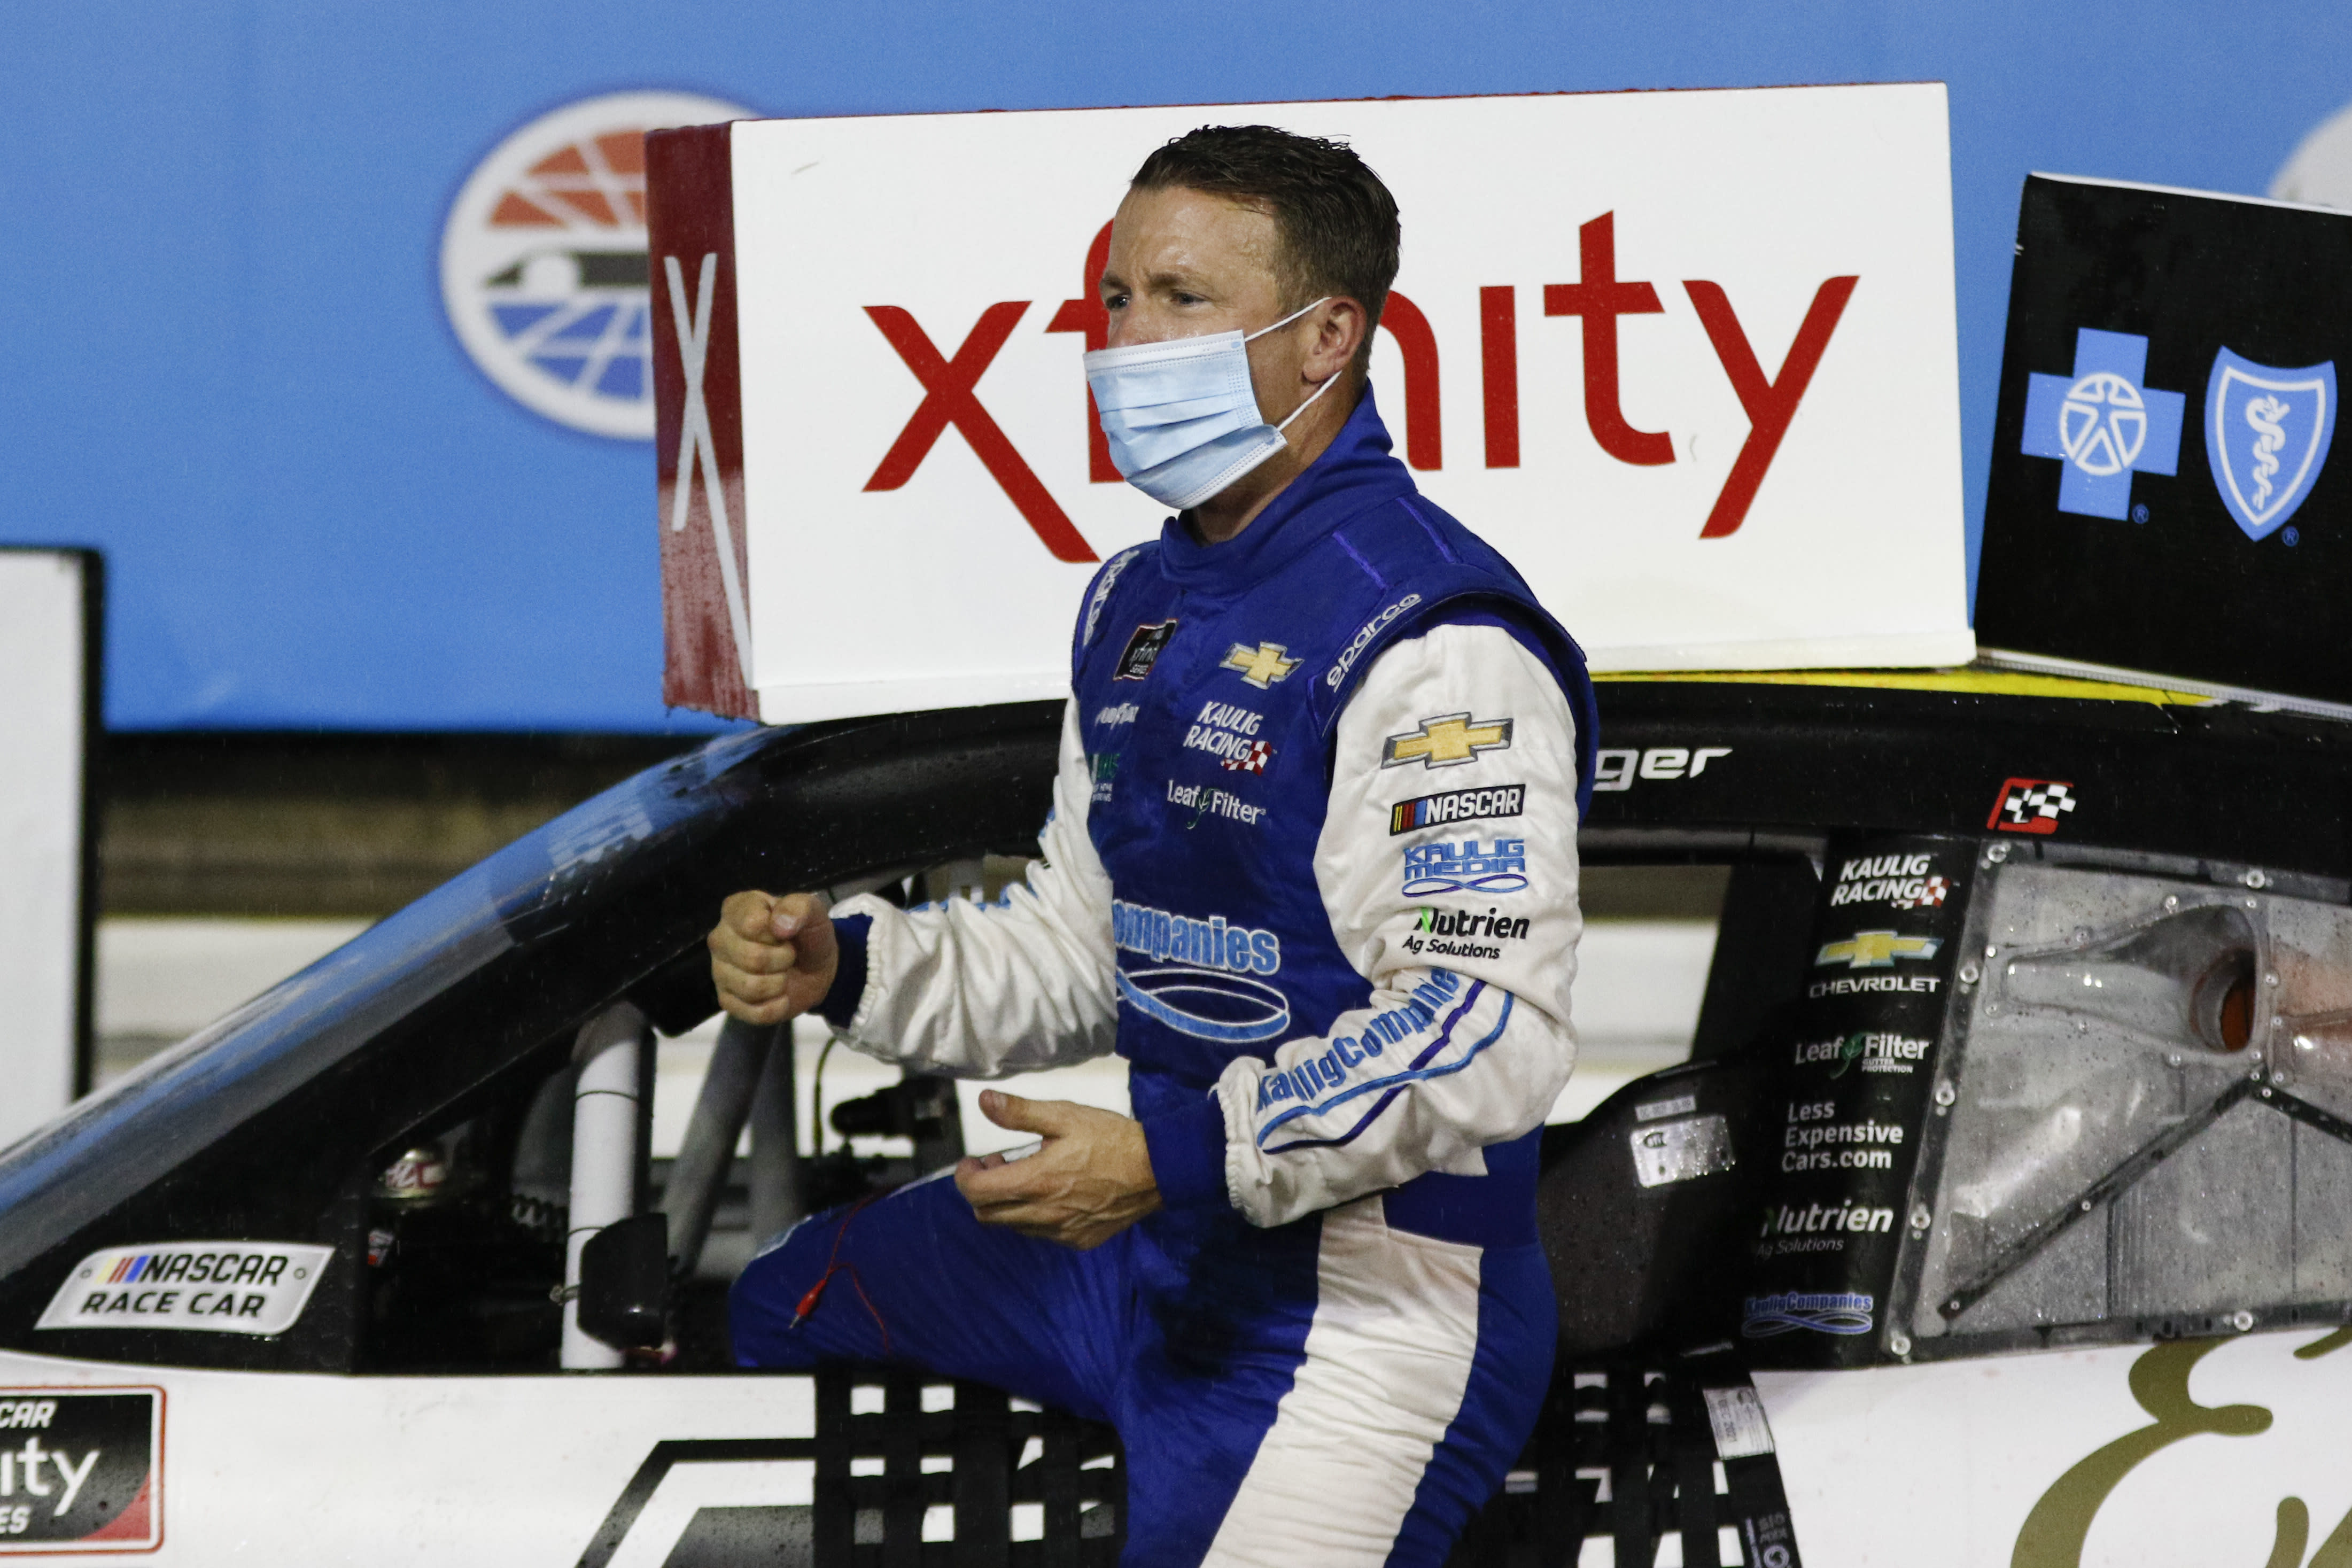 AJ Allmendinger climbs out of his car in Victory Lane after winning a NASCAR Xfinity Series auto race at Charlotte Motor Speedway in Concord, N.C., Saturday, Oct. 10, 2020. (AP Photo/Nell Redmond)